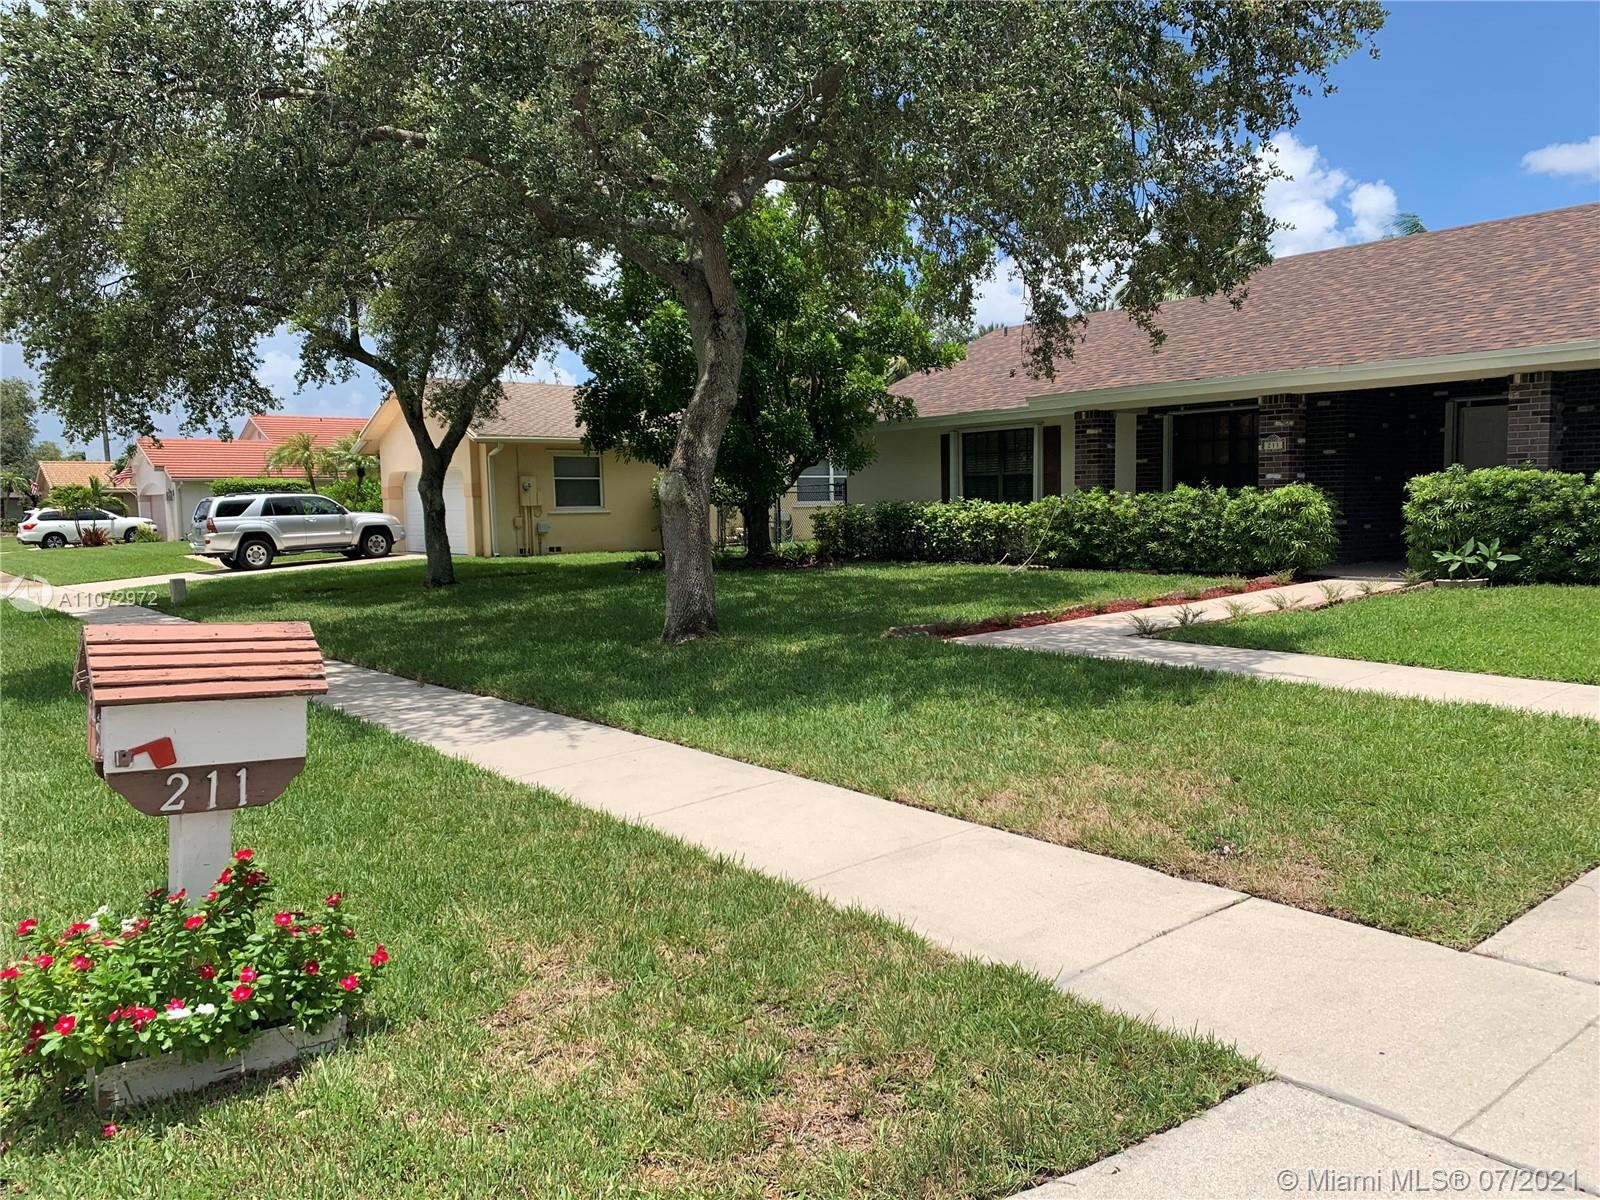 Photo of 211 NW 197th Ave, Pembroke Pines, FL 33029 (MLS # A11072972)